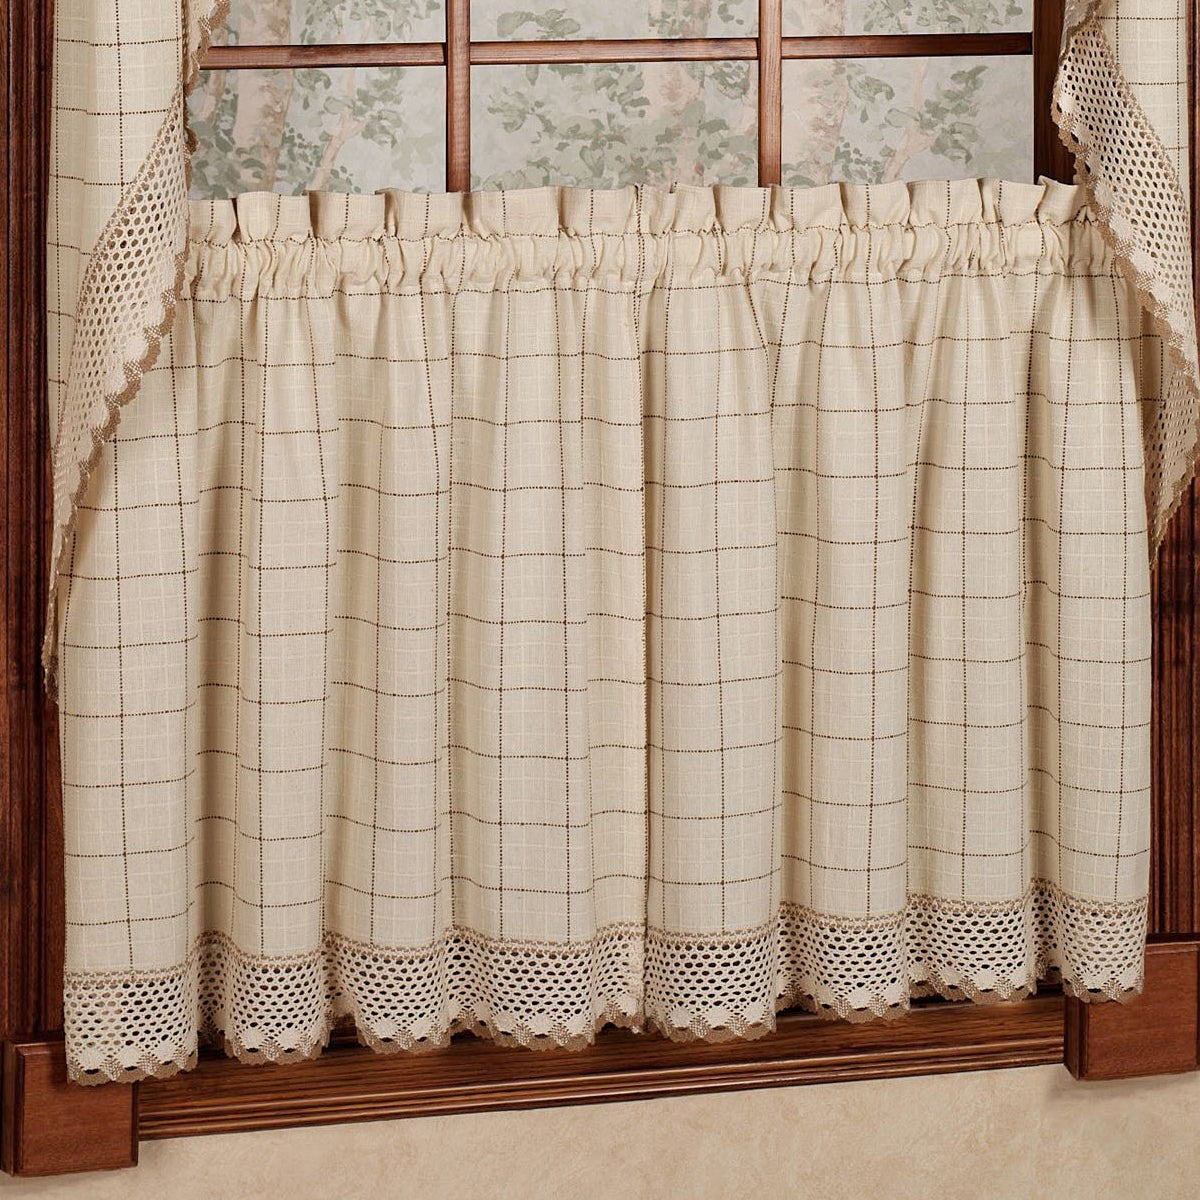 Cotton Classic Toast Window Pane Pattern And Crotchet Trim Tiers, Swags And Valance Options Within French Vanilla Country Style Curtain Parts With White Daisy Lace Accent (View 15 of 20)